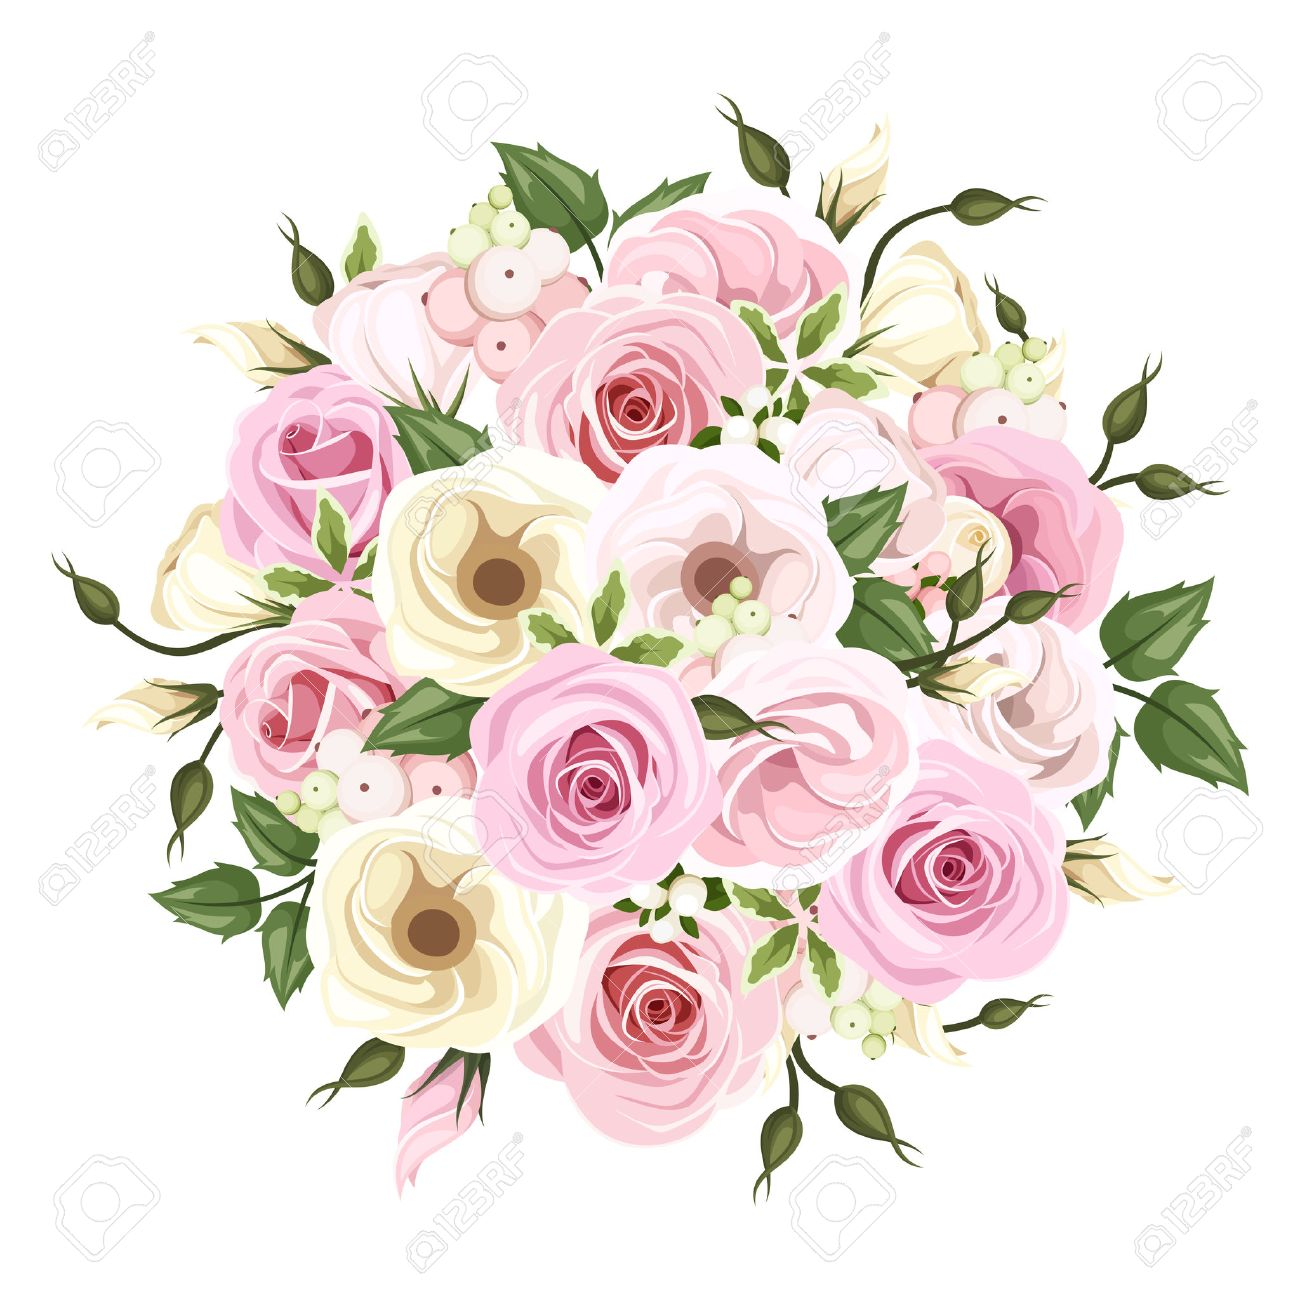 Bouquet Of Pink And White Roses And Lisianthus Flowers Vector